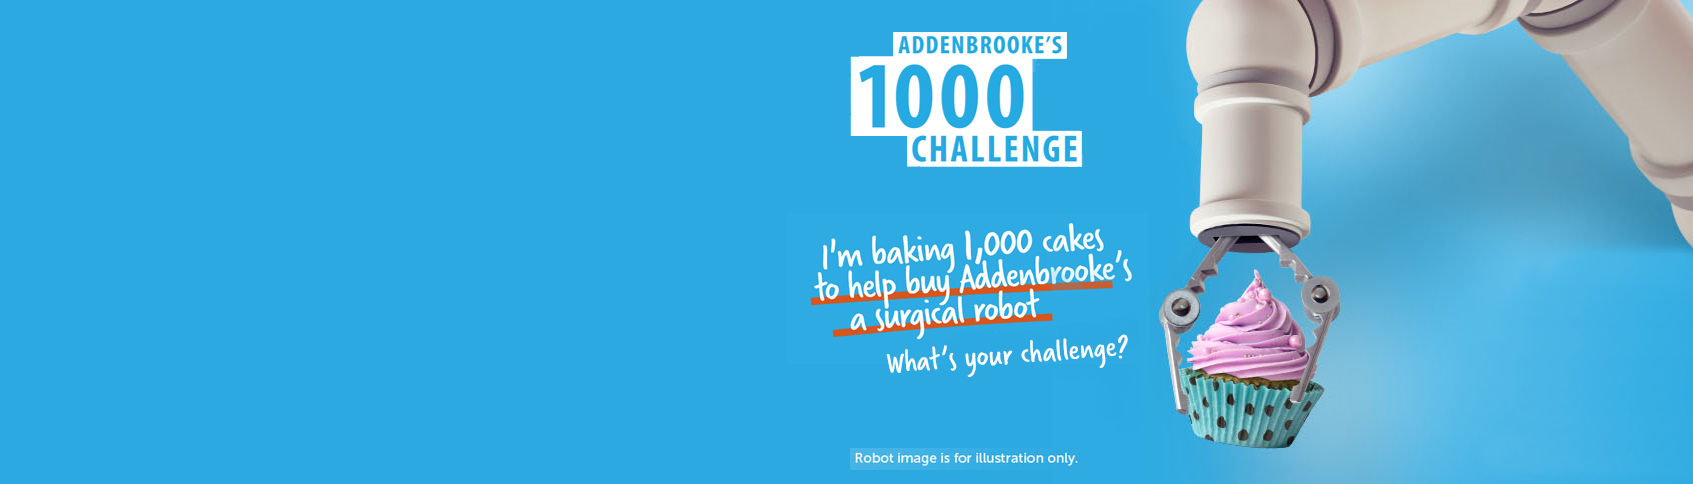 Take part in Addenbrooke's Charitable Trust's 1000 challenge to raise £1.5 for a surgical robot